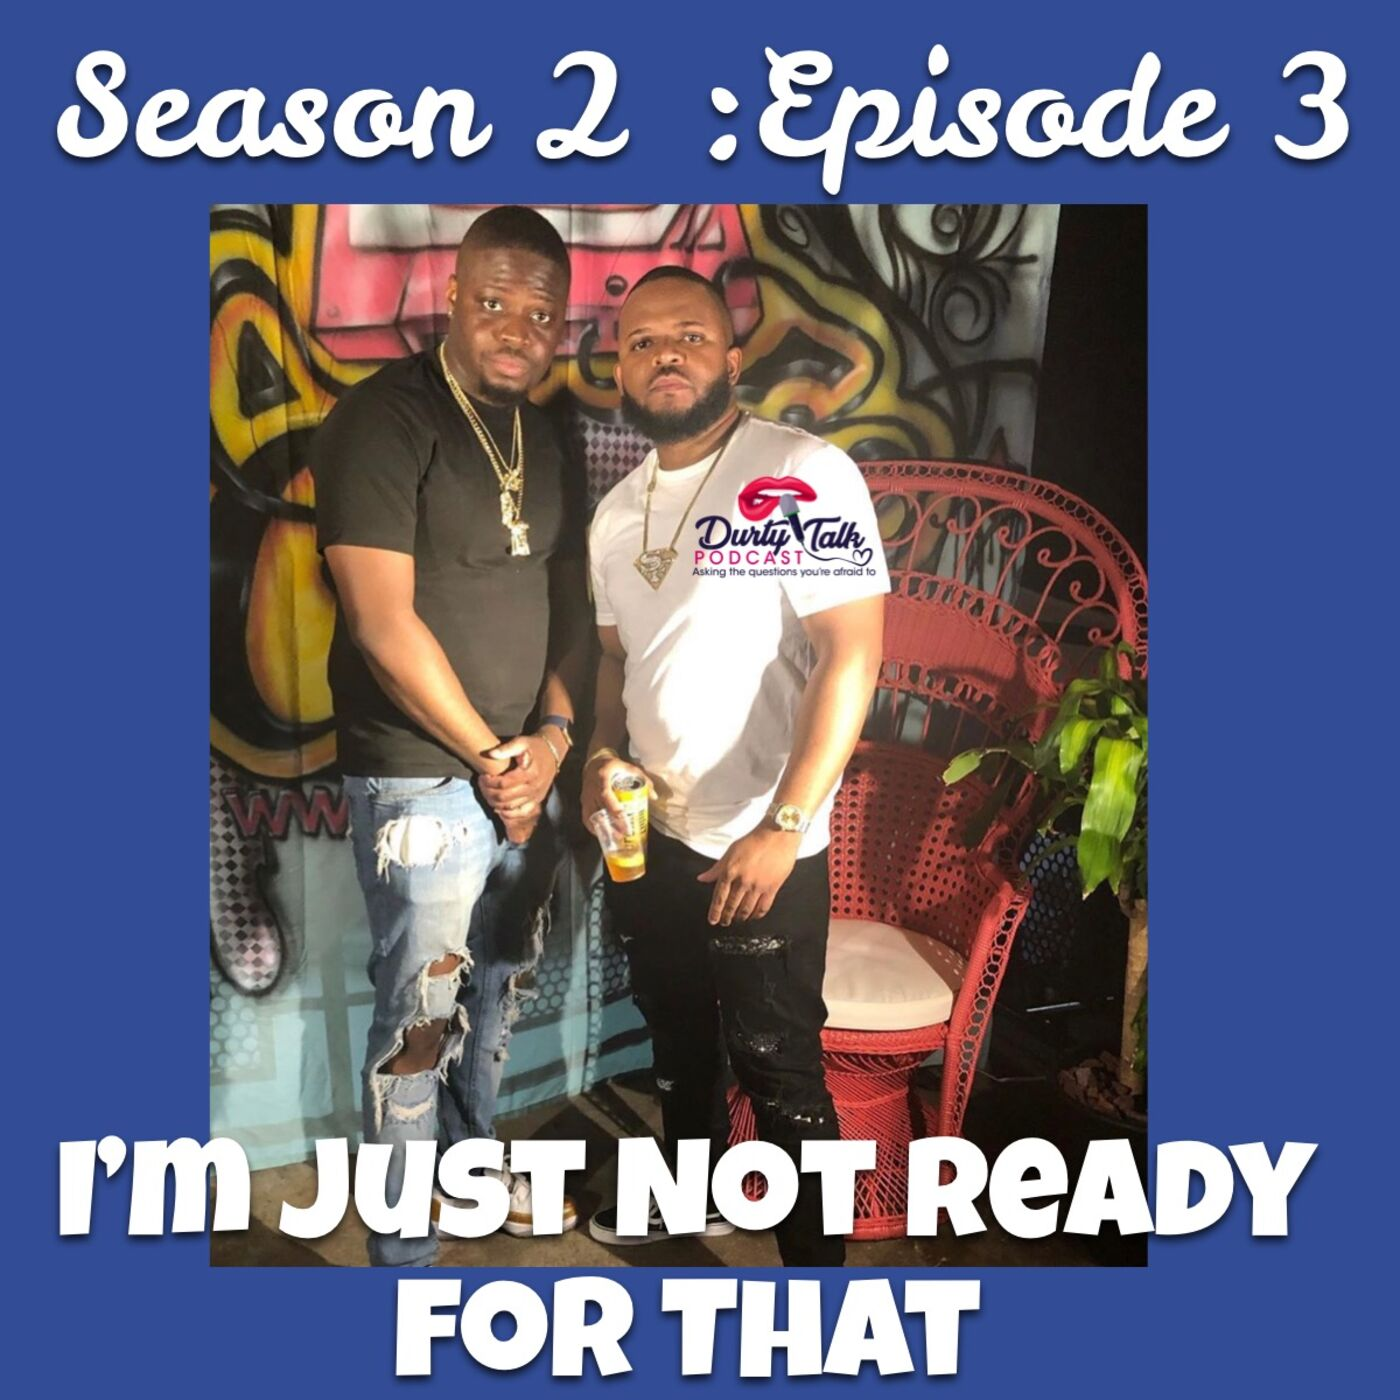 I'm Just Not Ready for That! - Season 2: Ep 3